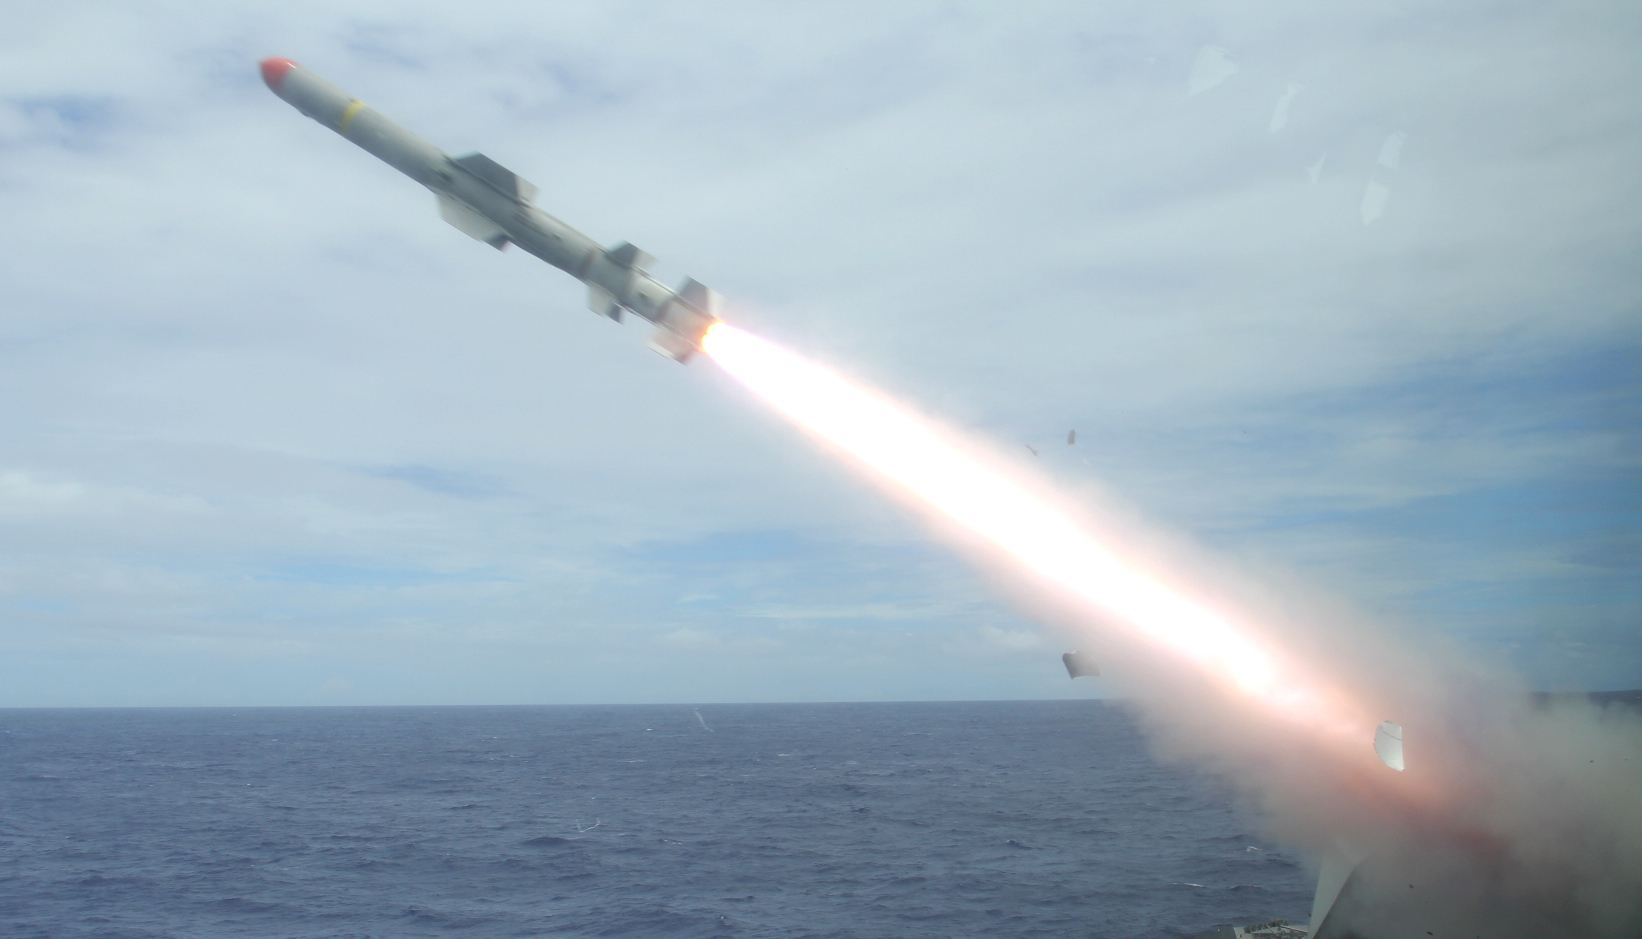 USS Coronado (LCS-4), an Independence-variant littoral combat ship, launches the first over-the-horizon missile engagement using a Harpoon Block 1C missile. US Navy Photo